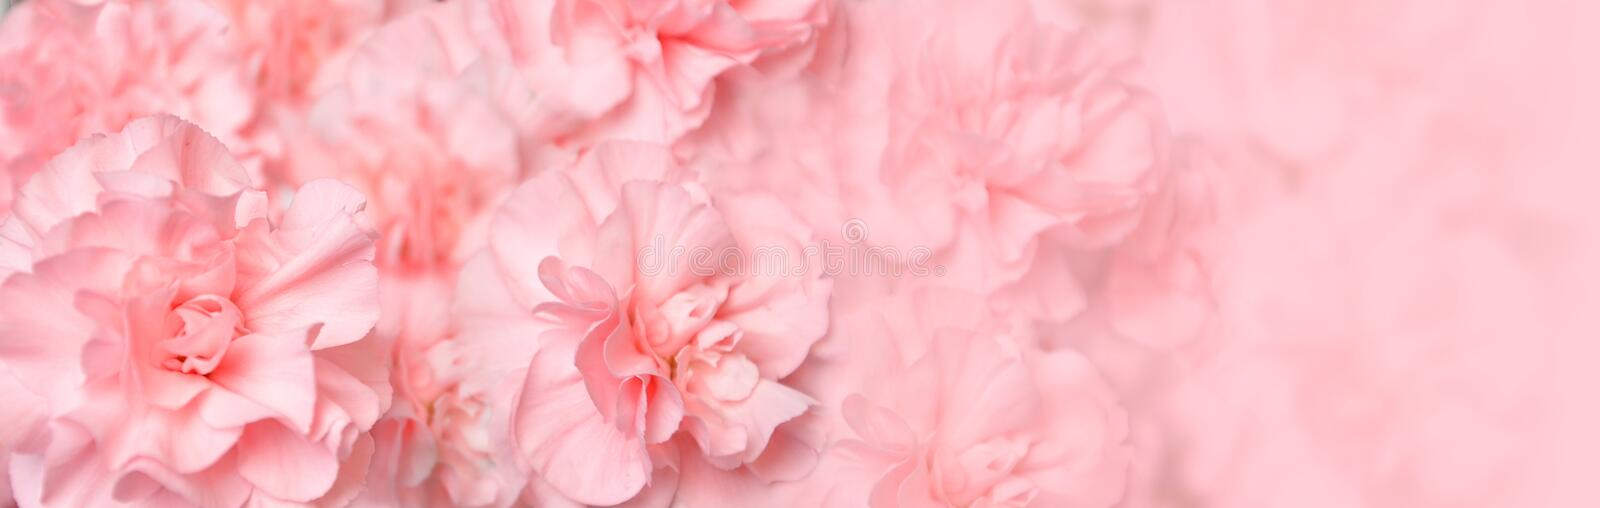 Beautiful Pink Carnation Flower Header royalty free stock images